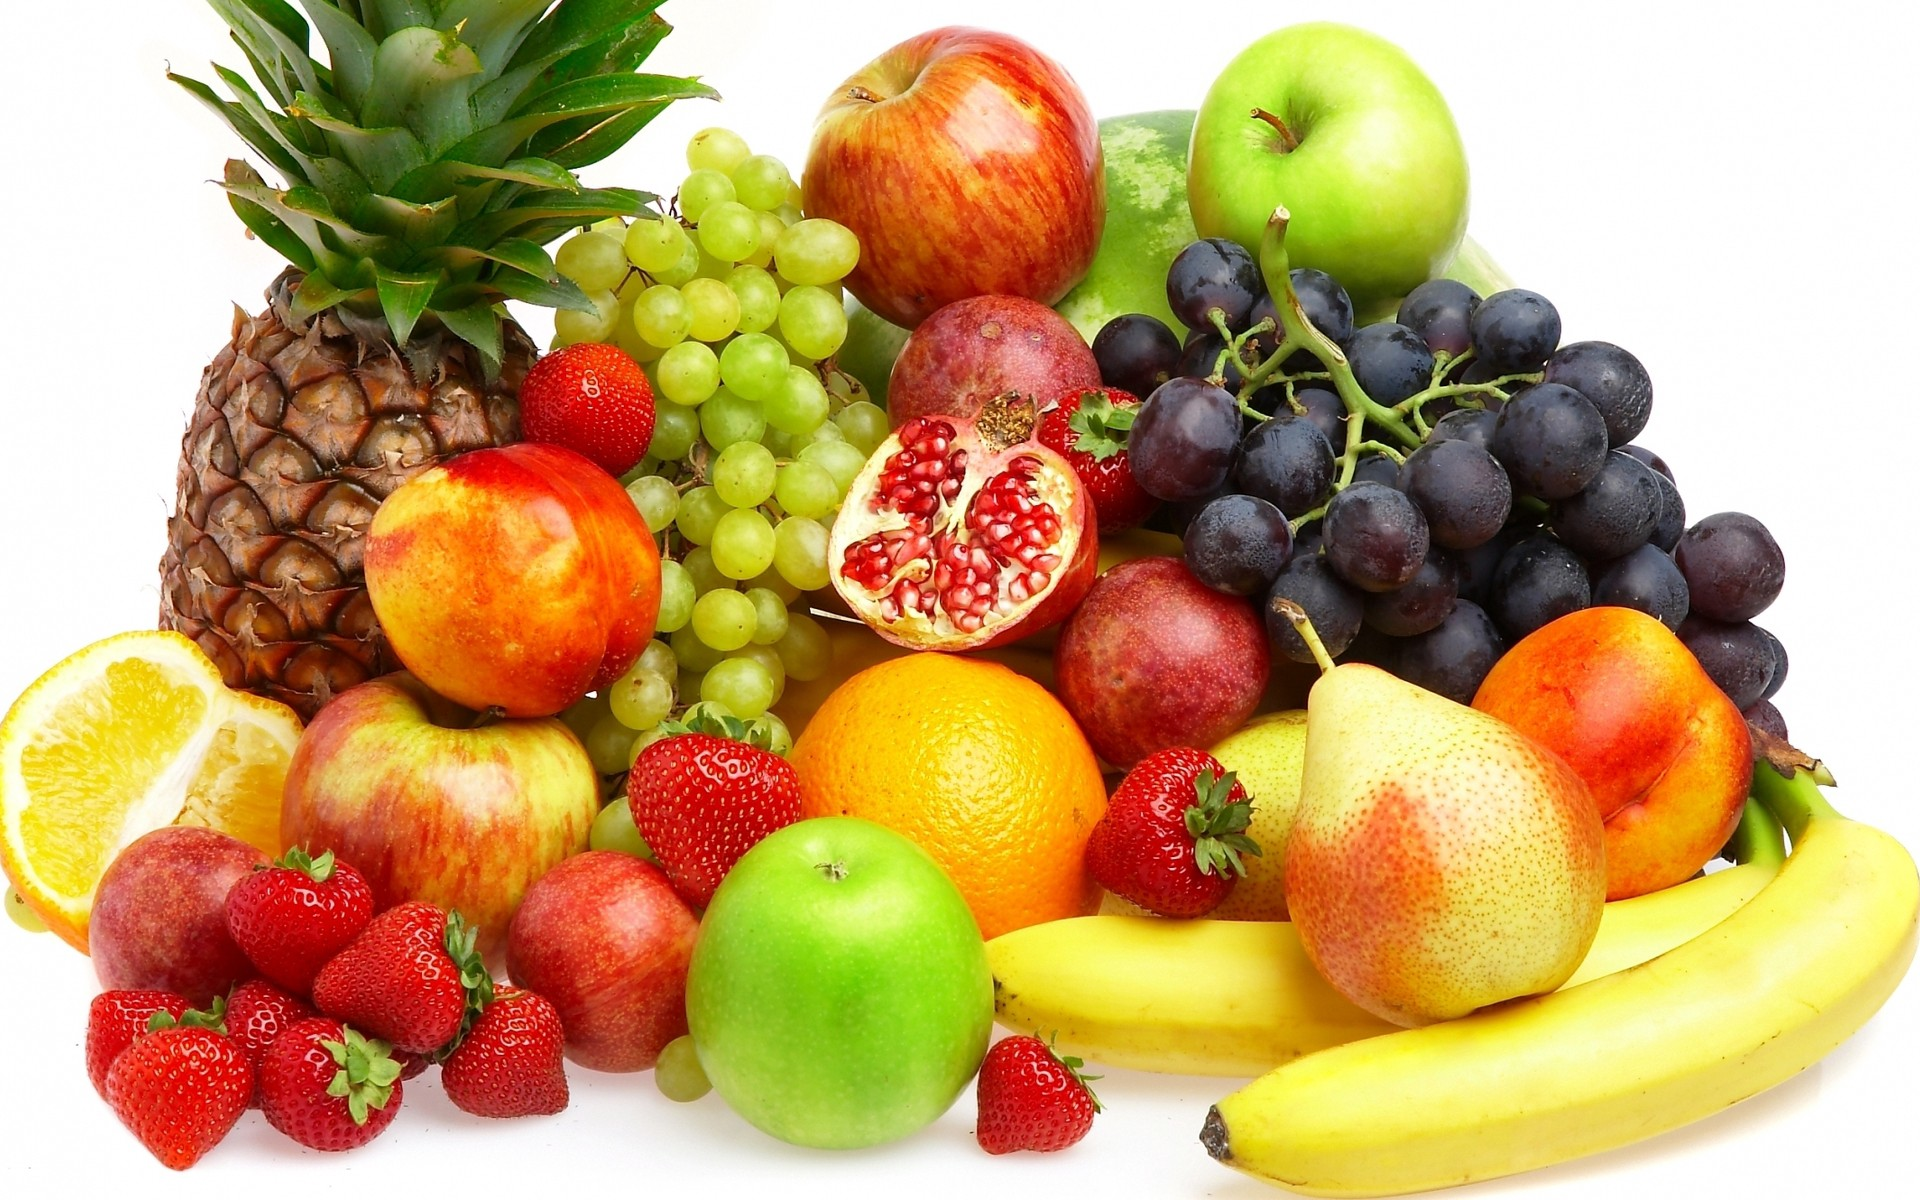 Fruits For Diabetics Learn Which Fruits Diabetics Should Eat As